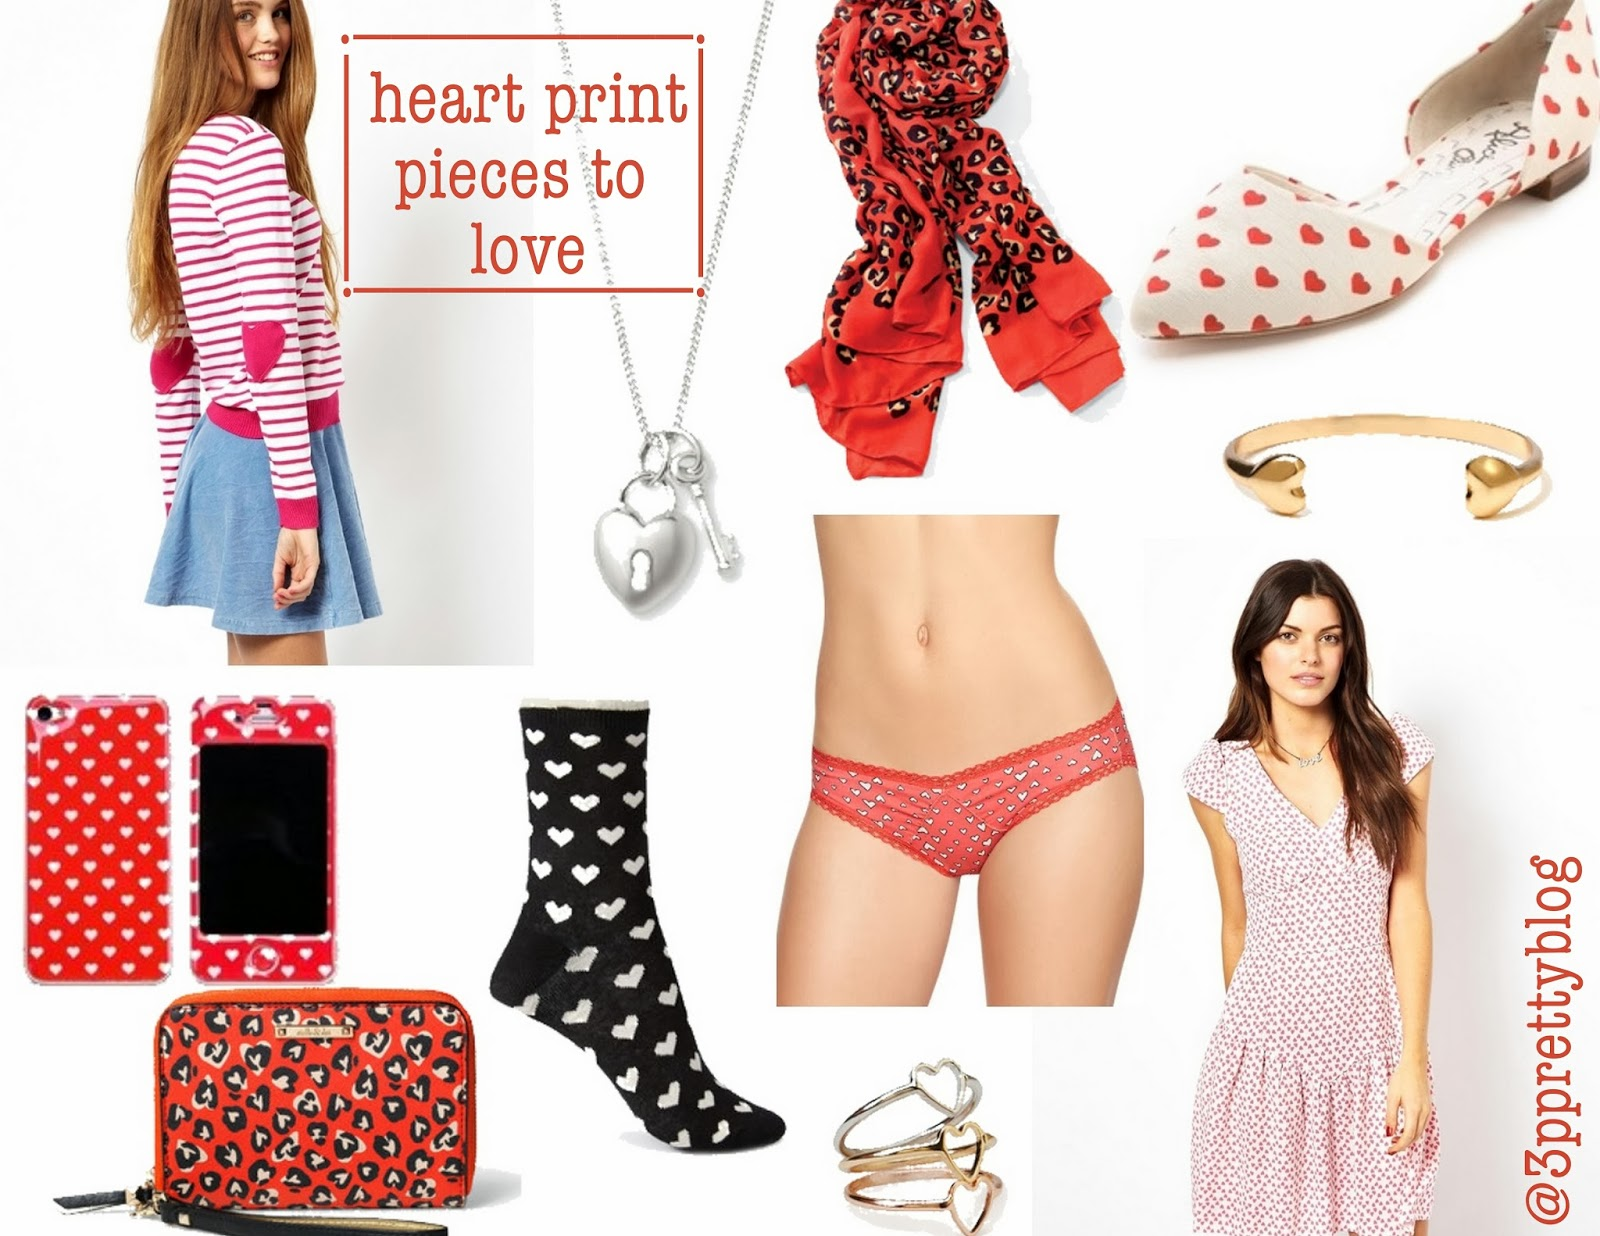 Heart print pieces to love